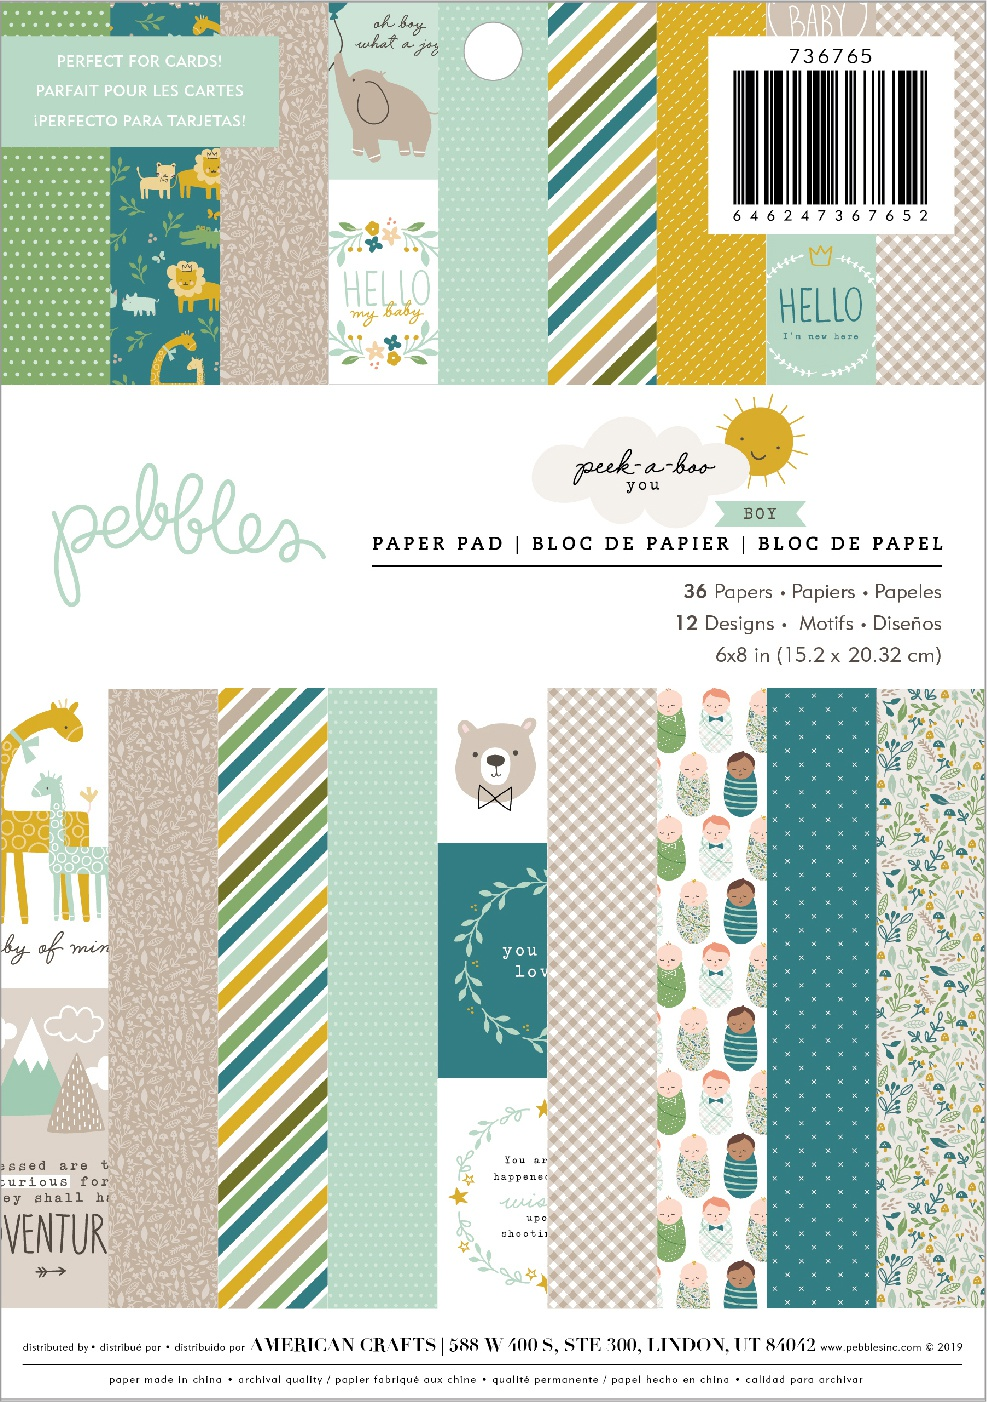 Pebbles Peek-a-Boo You - 6x8 Paper Paper Pad, Boy